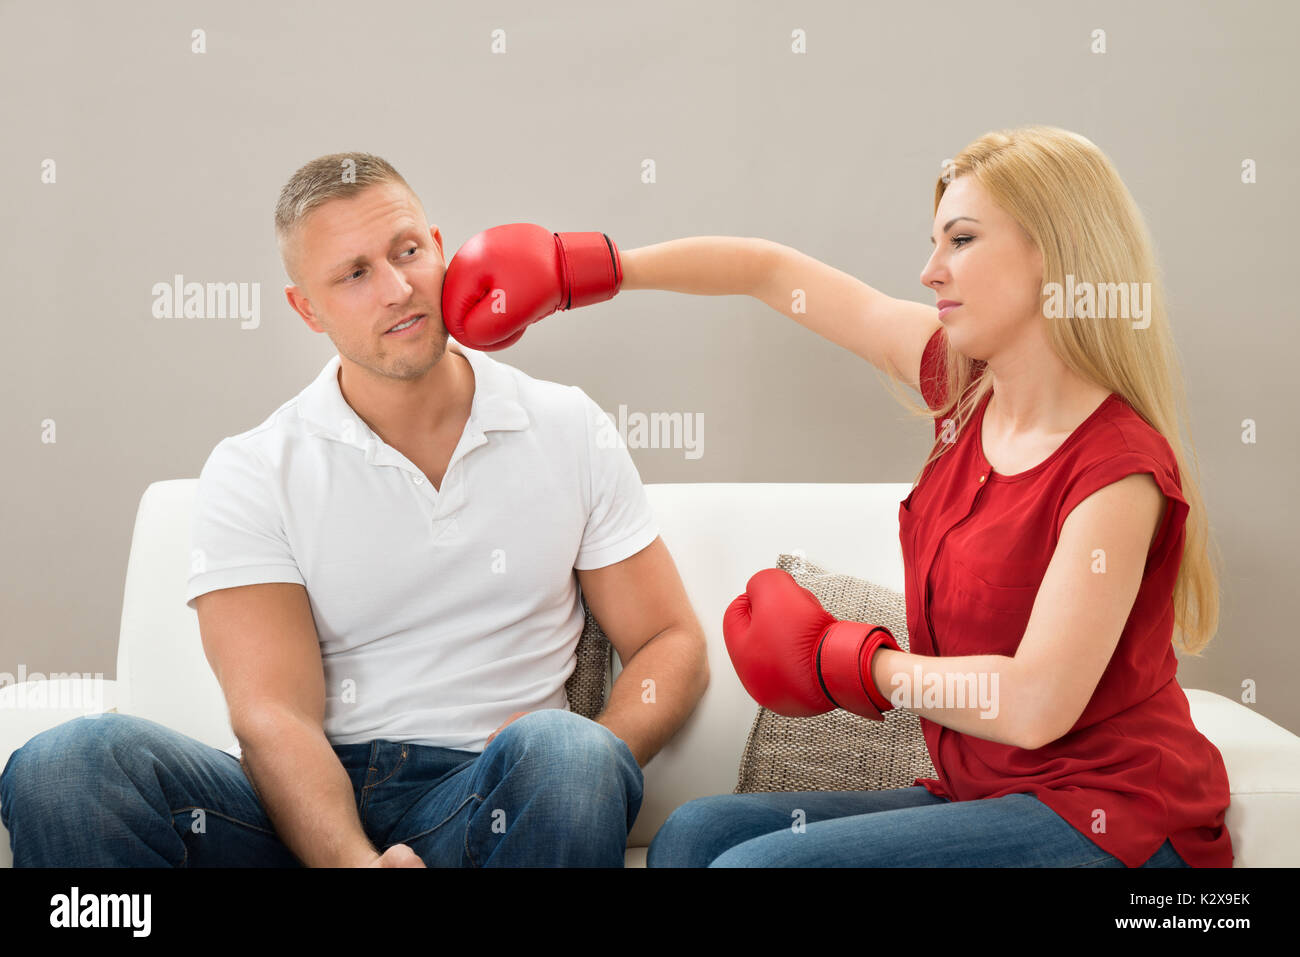 Portrait Of Young Couple Sitting On Sofa Fighting With Boxing Gloves - Stock Image